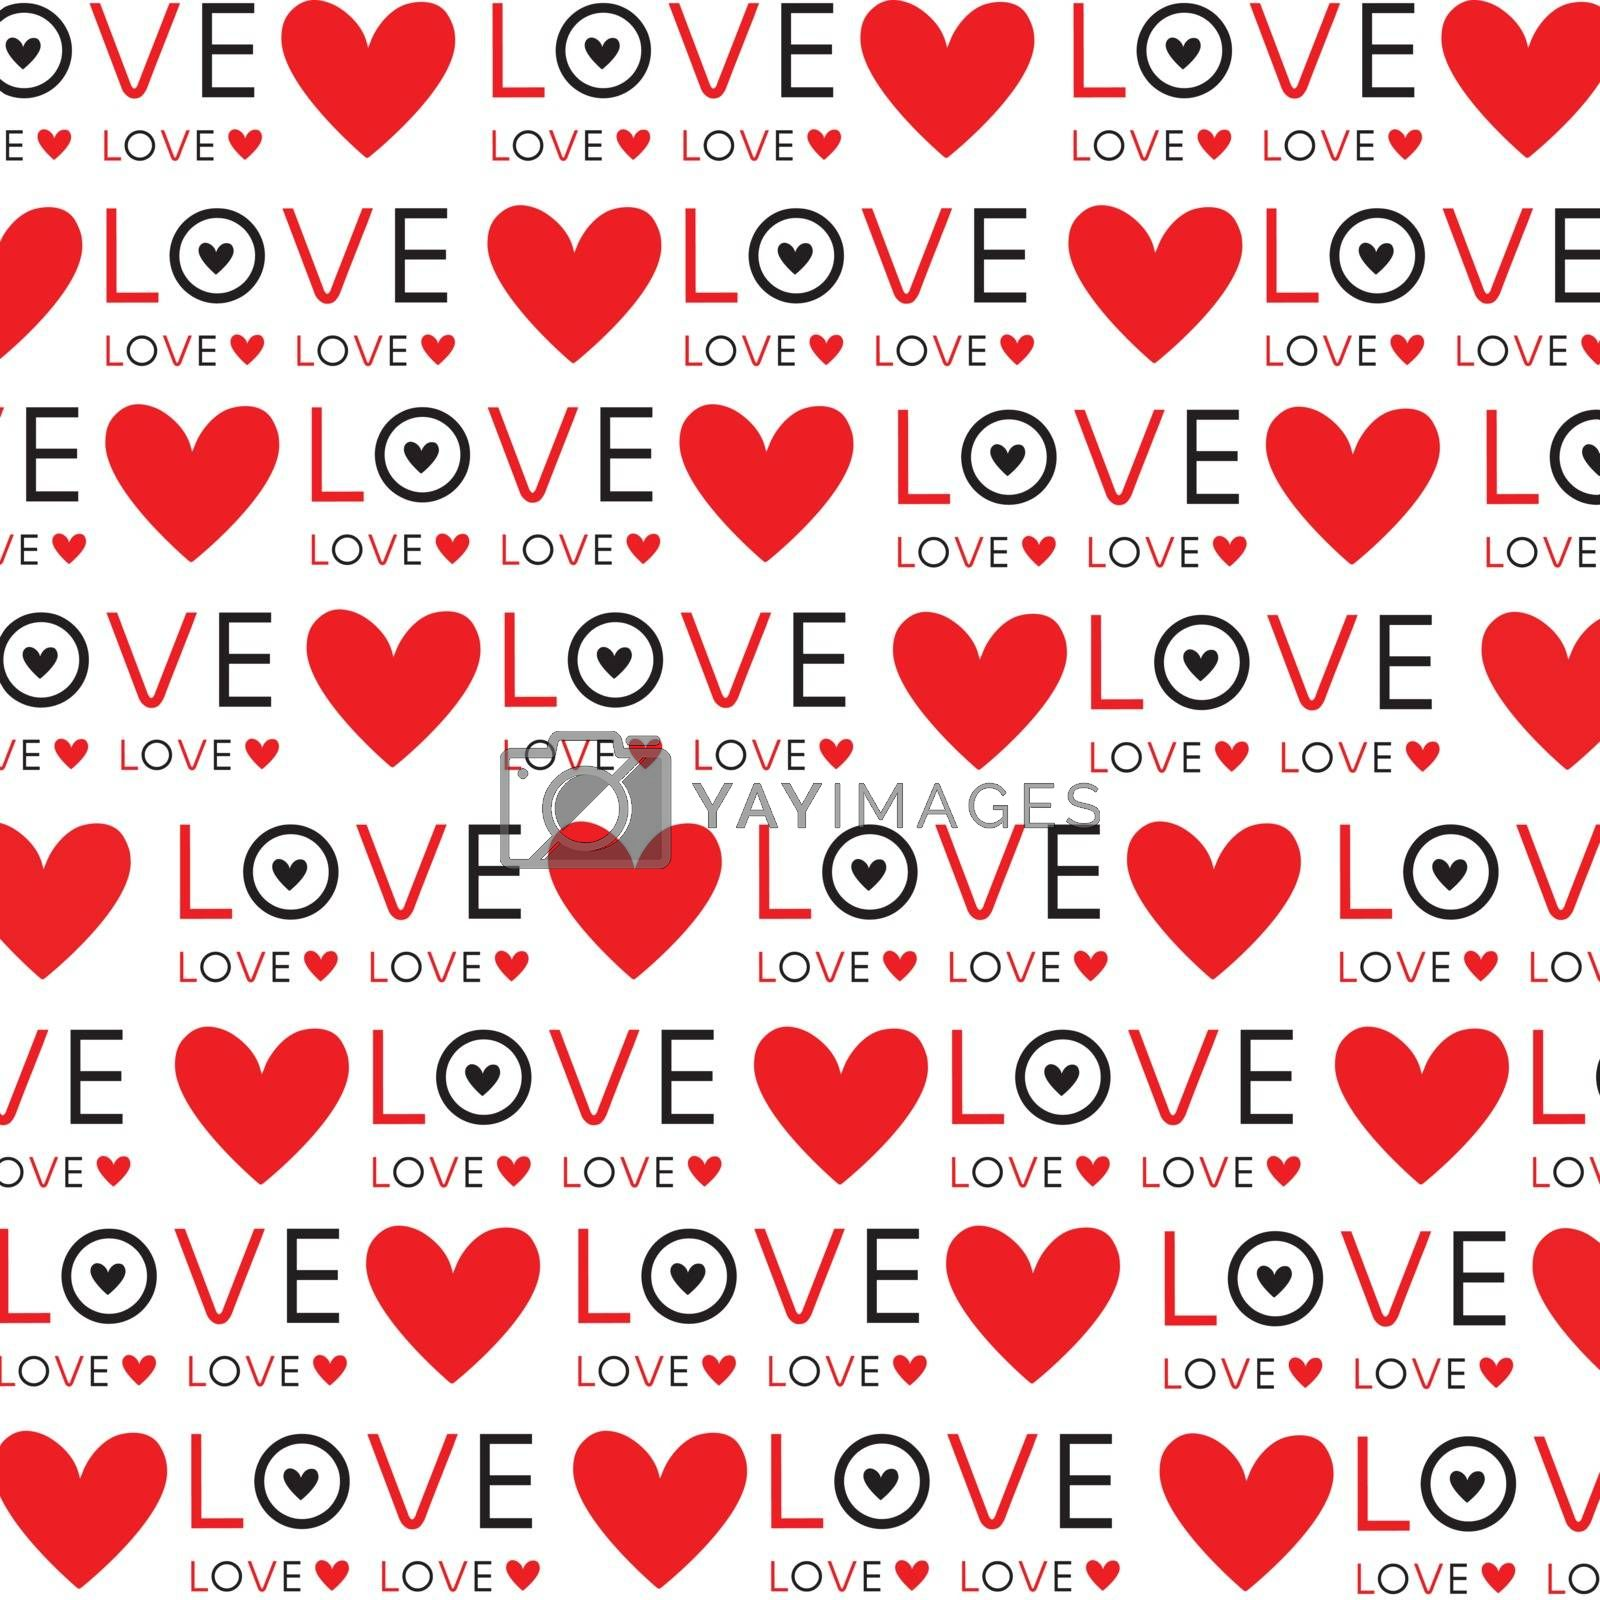 Red Heart and Love in Valentine's Day Wallpaper Background vector